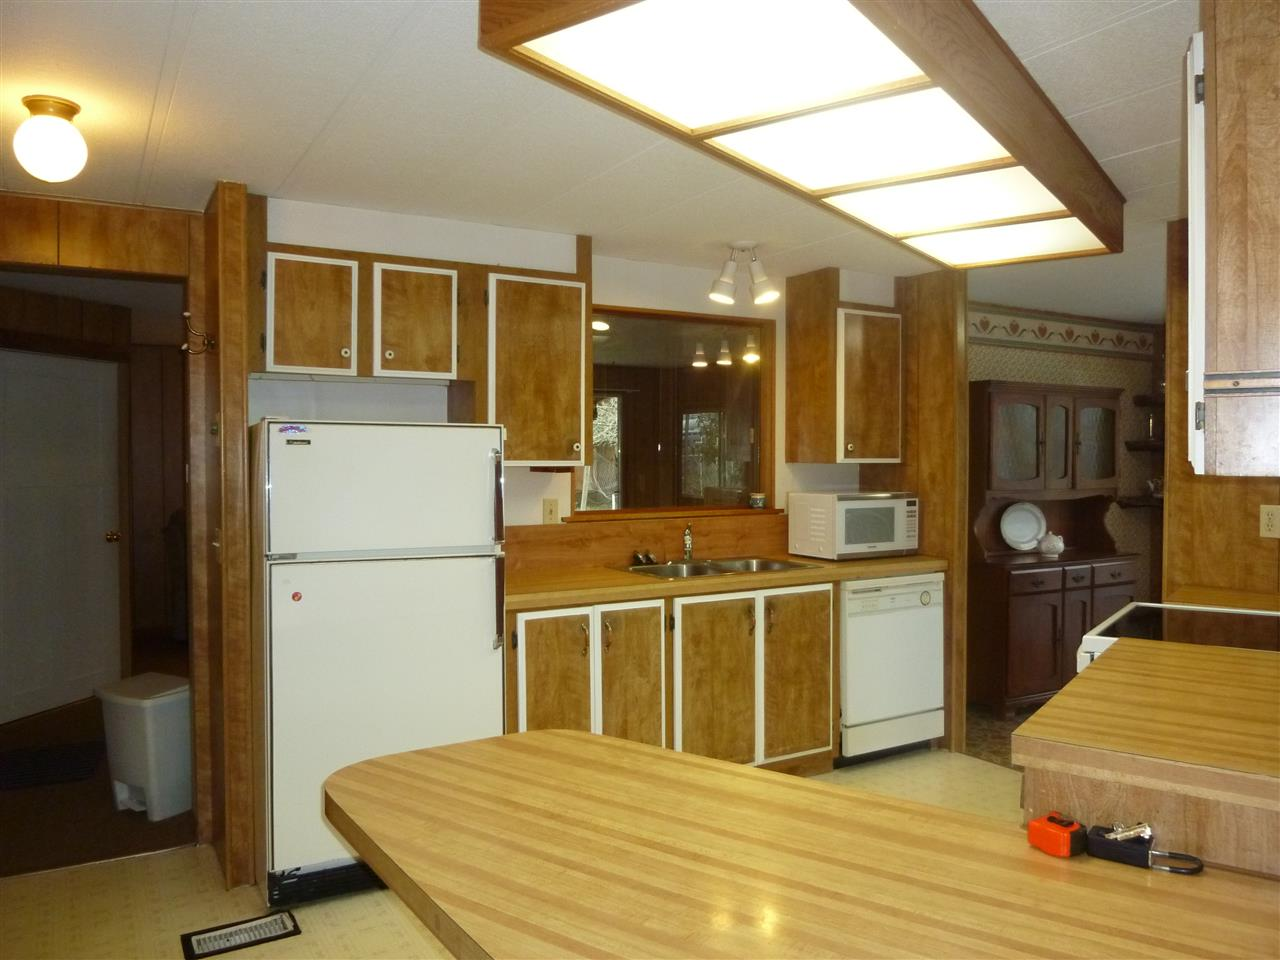 "Photo 3: Photos: 5675 SURF Circle in Sechelt: Sechelt District Manufactured Home for sale in ""SECHELT"" (Sunshine Coast)  : MLS® # R2143216"